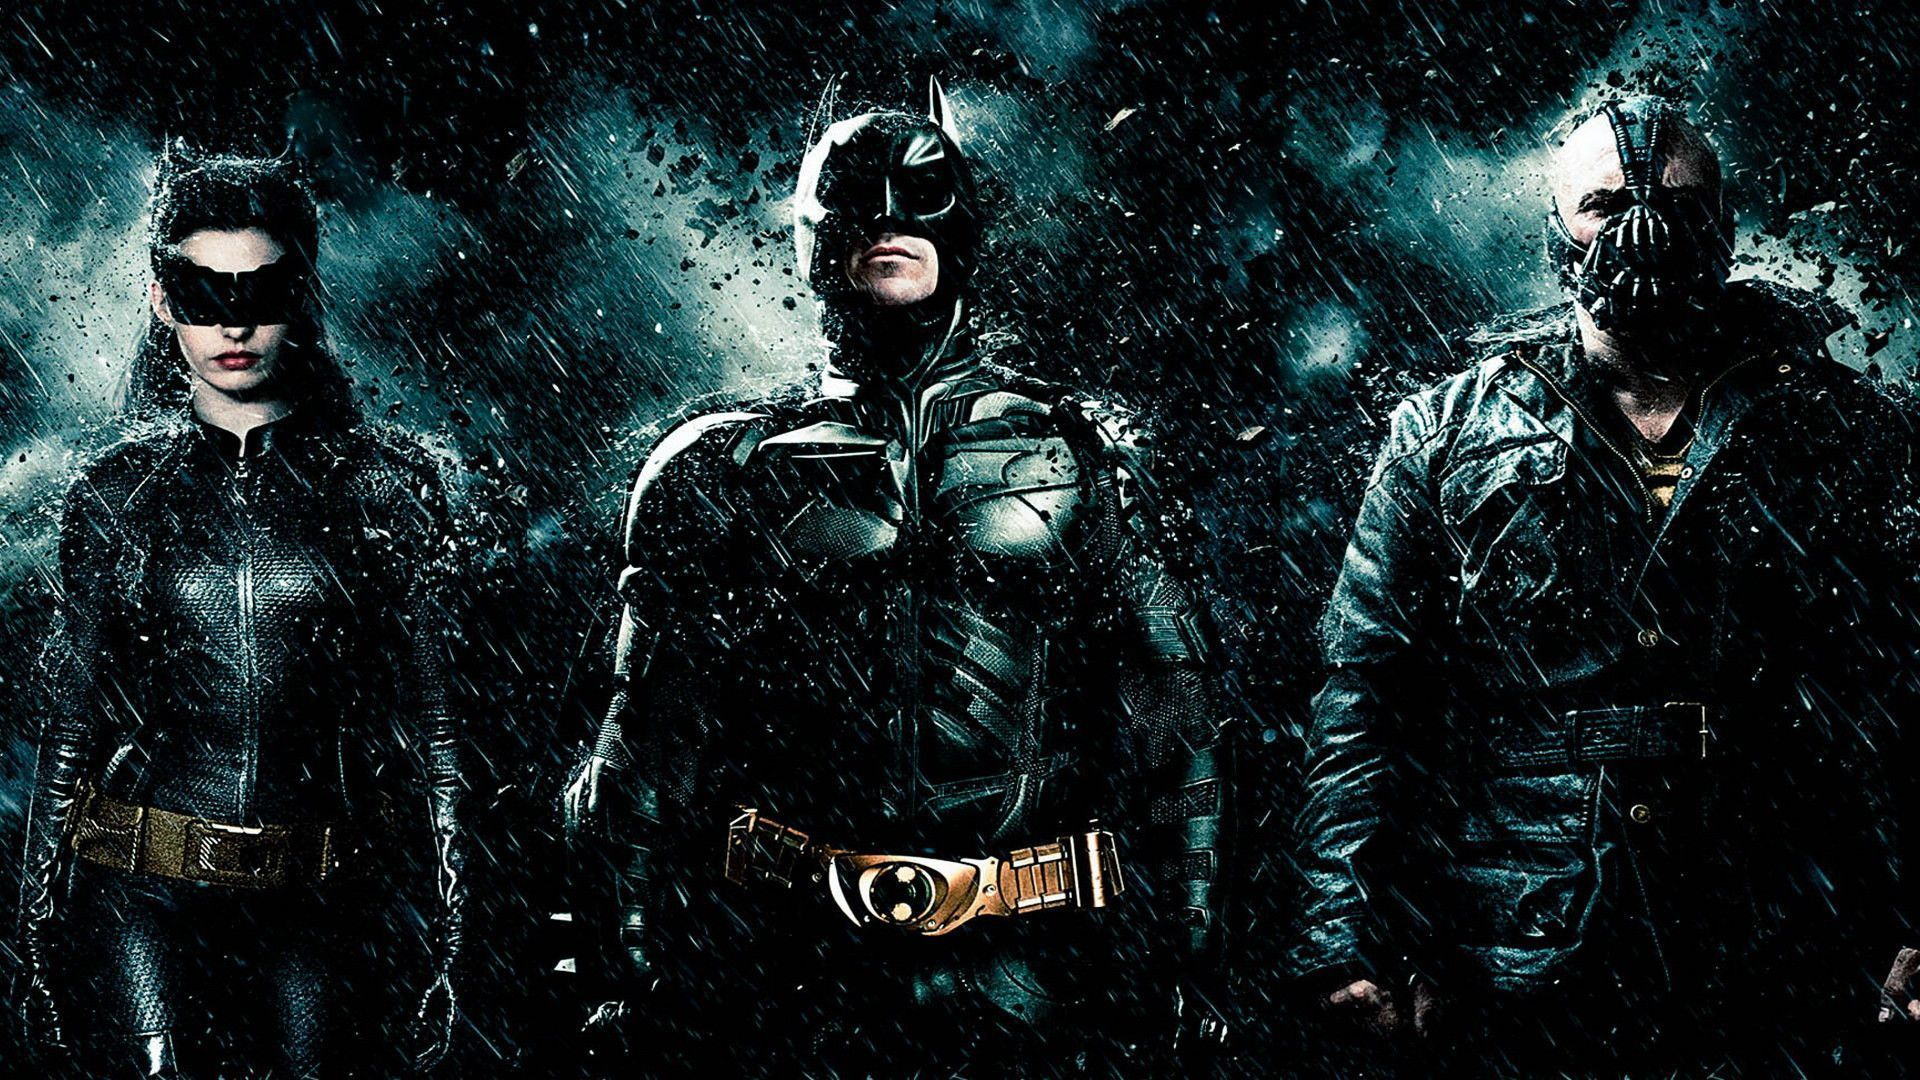 the dark knight wallpapers hd 55 wallpapers � adorable